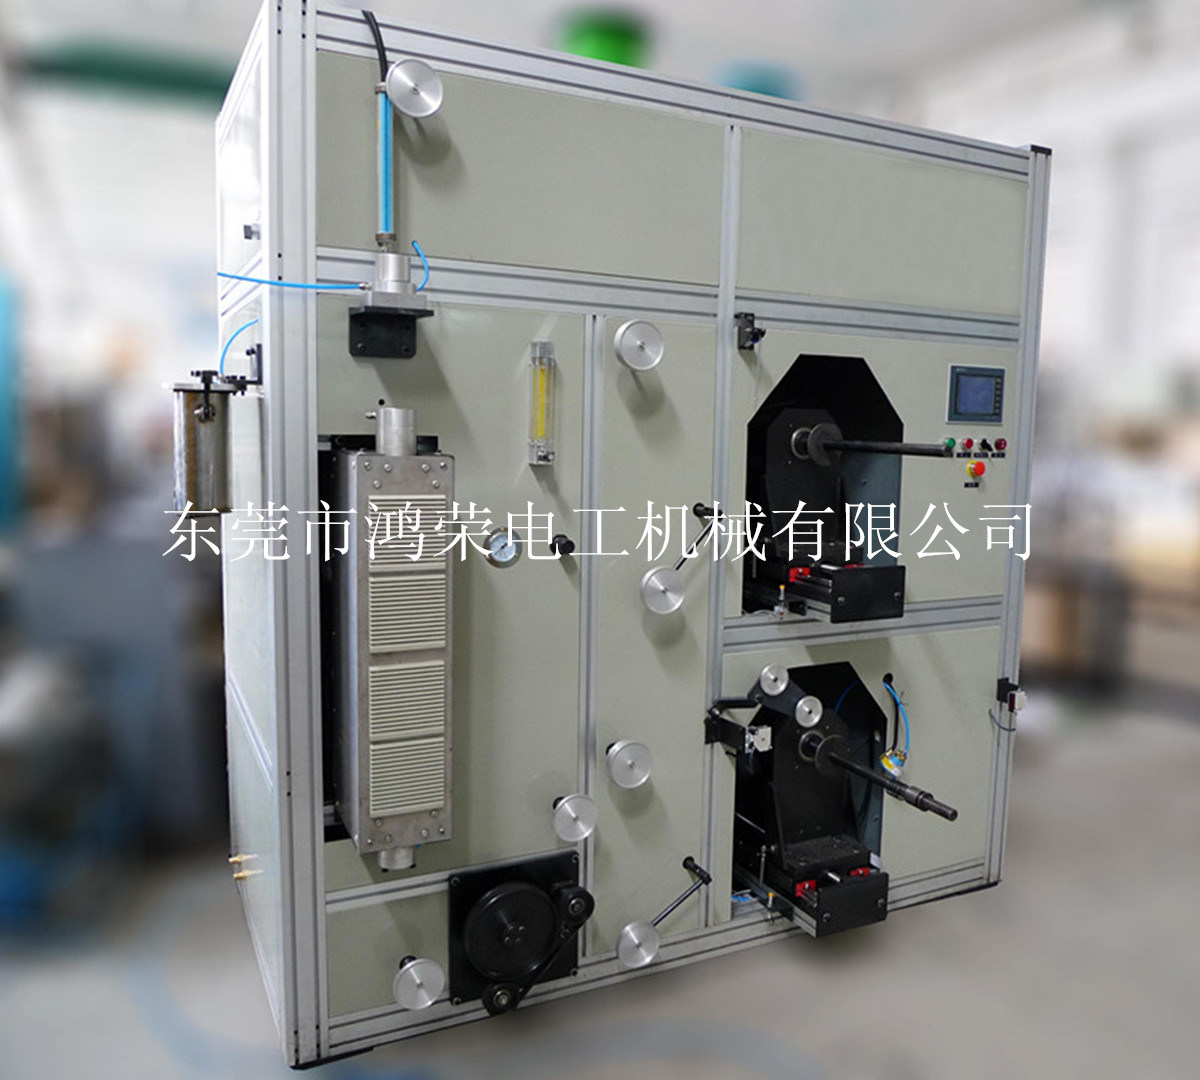 Reliable Optical Fiber Cable Machine